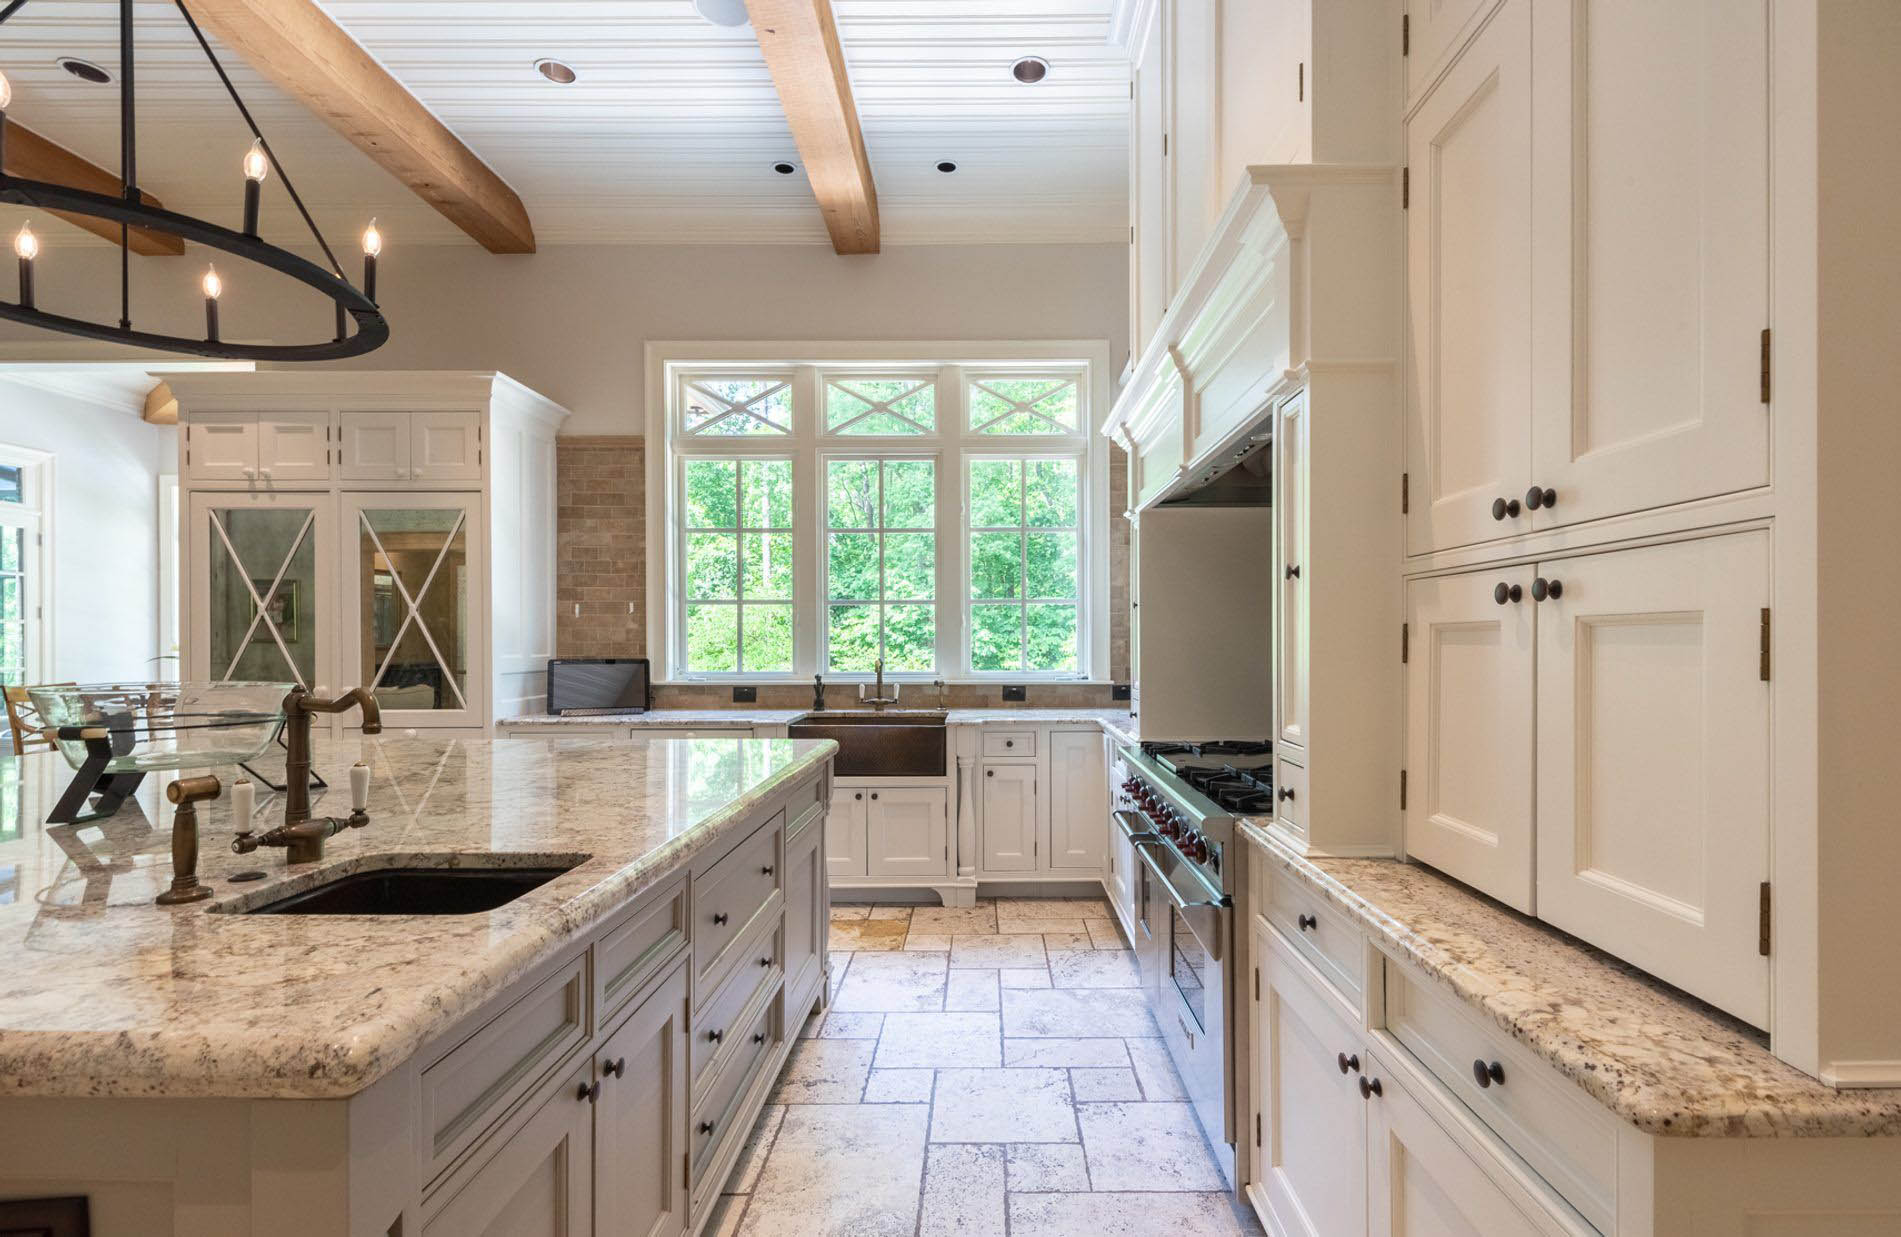 Cream kitchen cabinets with cream and brown granite countertops. Natural tan stone flooring tiles and subway backsplash.